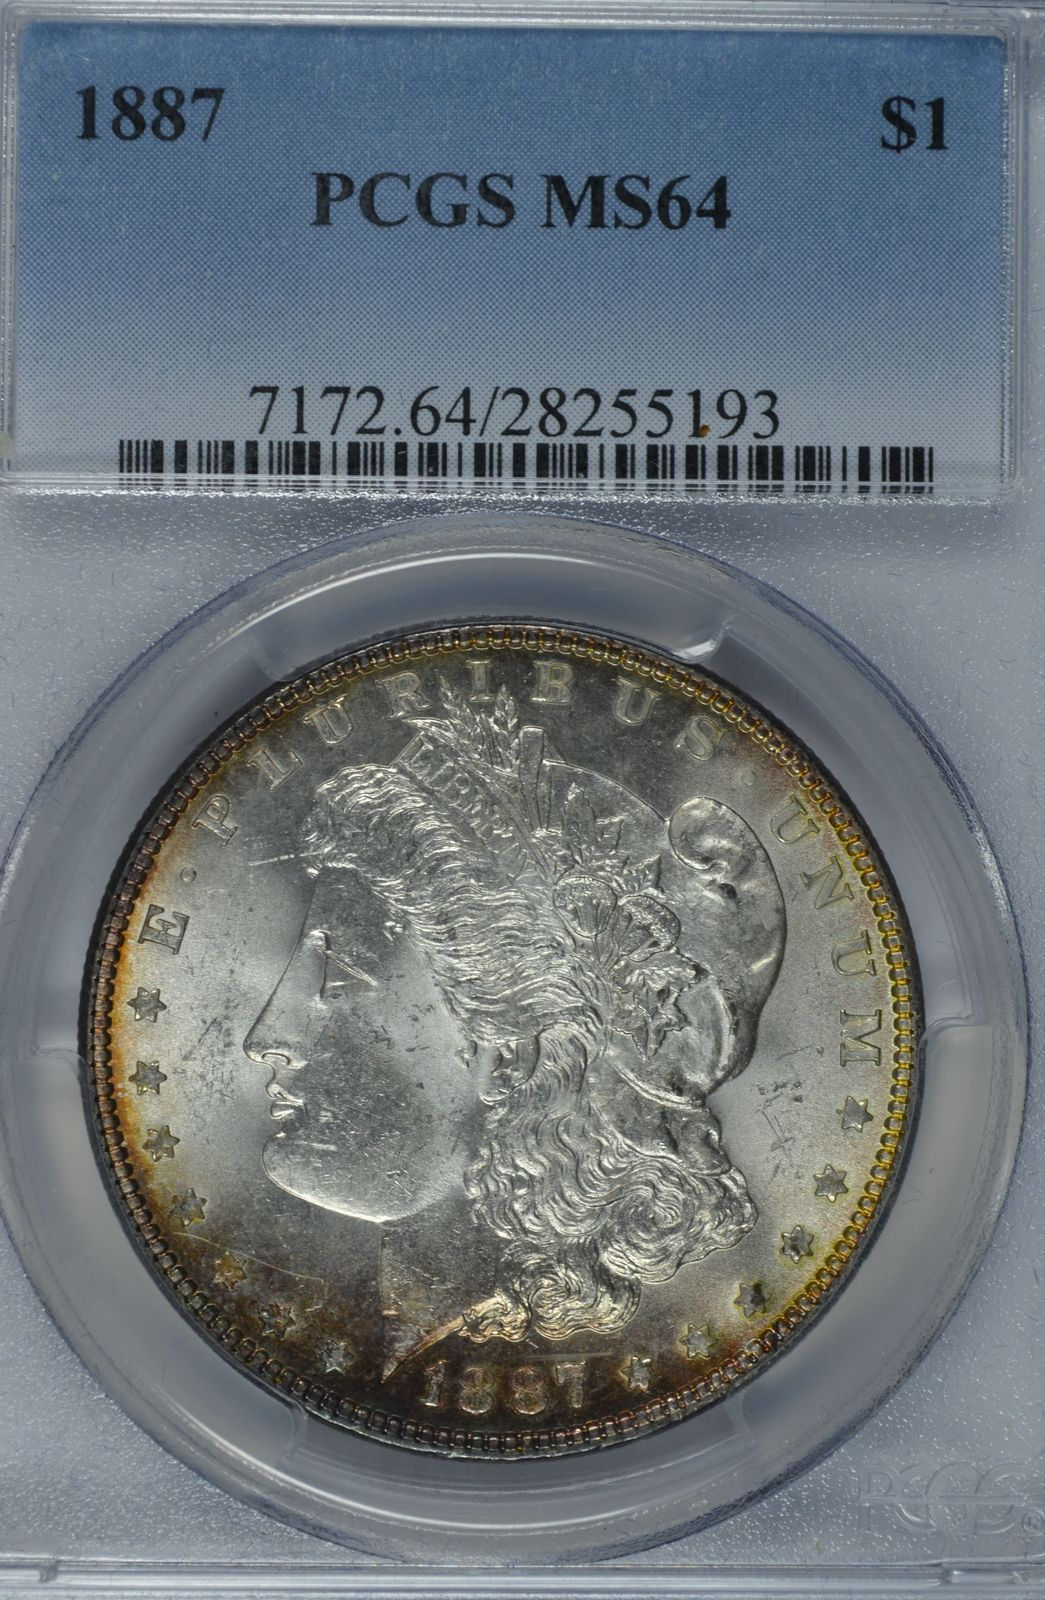 Primary image for 1887 P Morgan silver dollar PCGS MS64